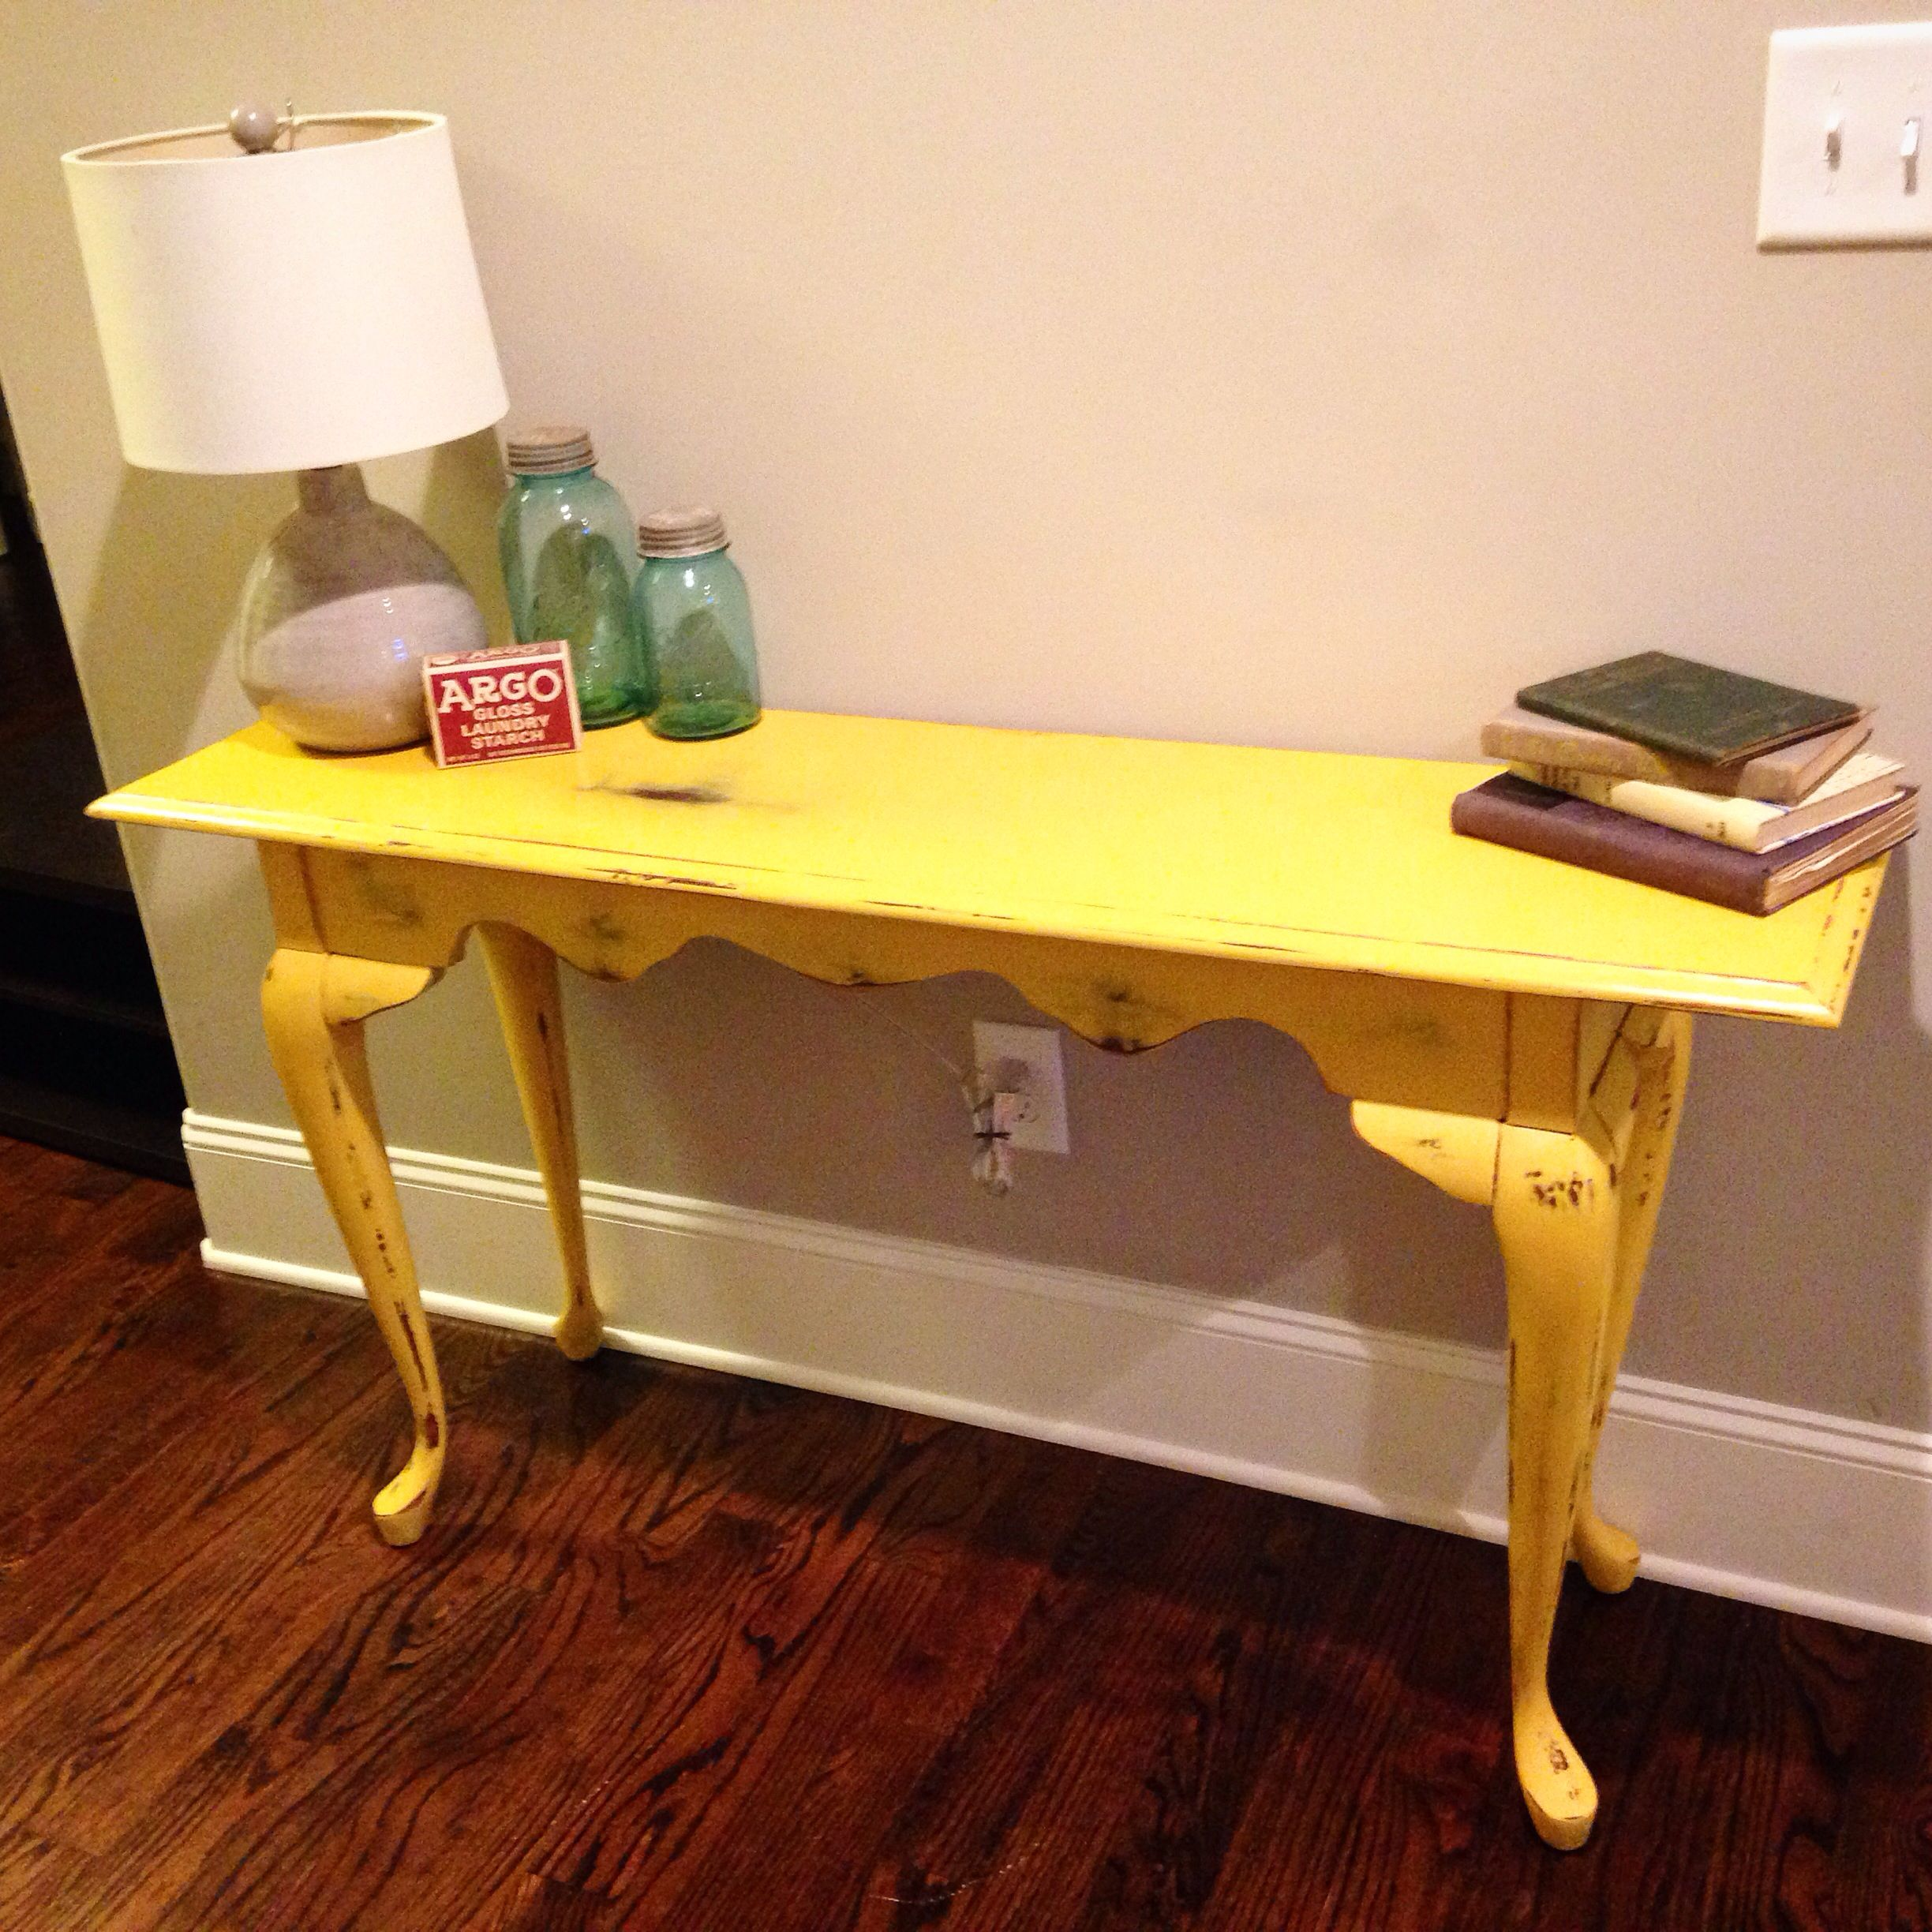 Distressed Yellow Entry Table Sanded Painted Sanded To Look Shabby Then Used Furniture Paste To Make It Looked Finished Entry Table Diy Upcycle Furniture